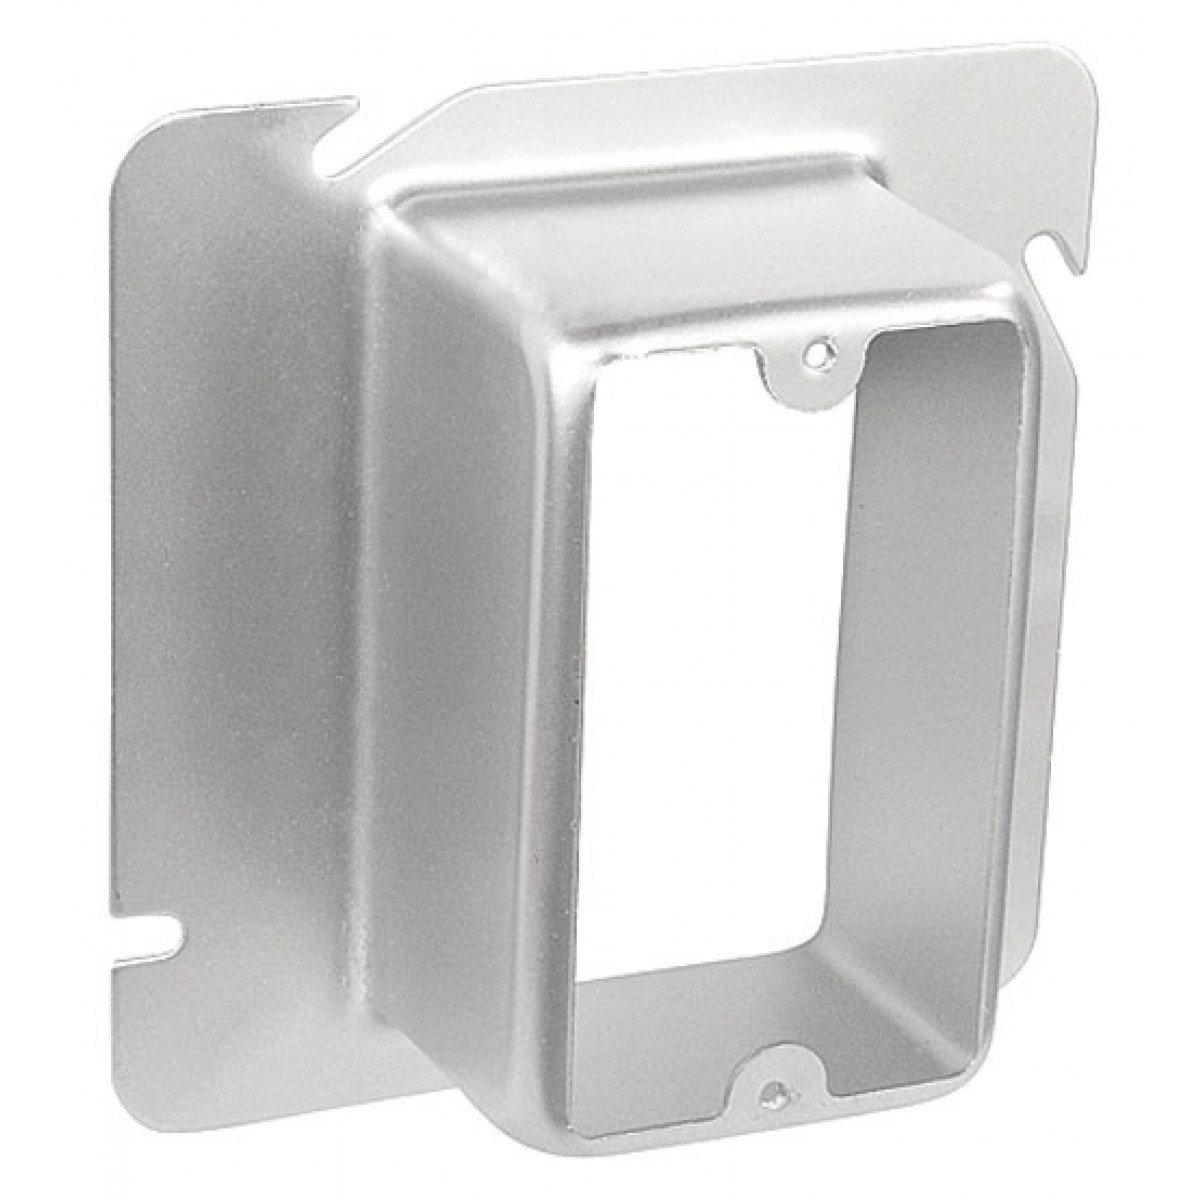 1 Pc, 4-11/16 One Gang Device Ring, 2 In. Raised, Steel Used to Mount Switches Or Receptacles On Junction Boxes